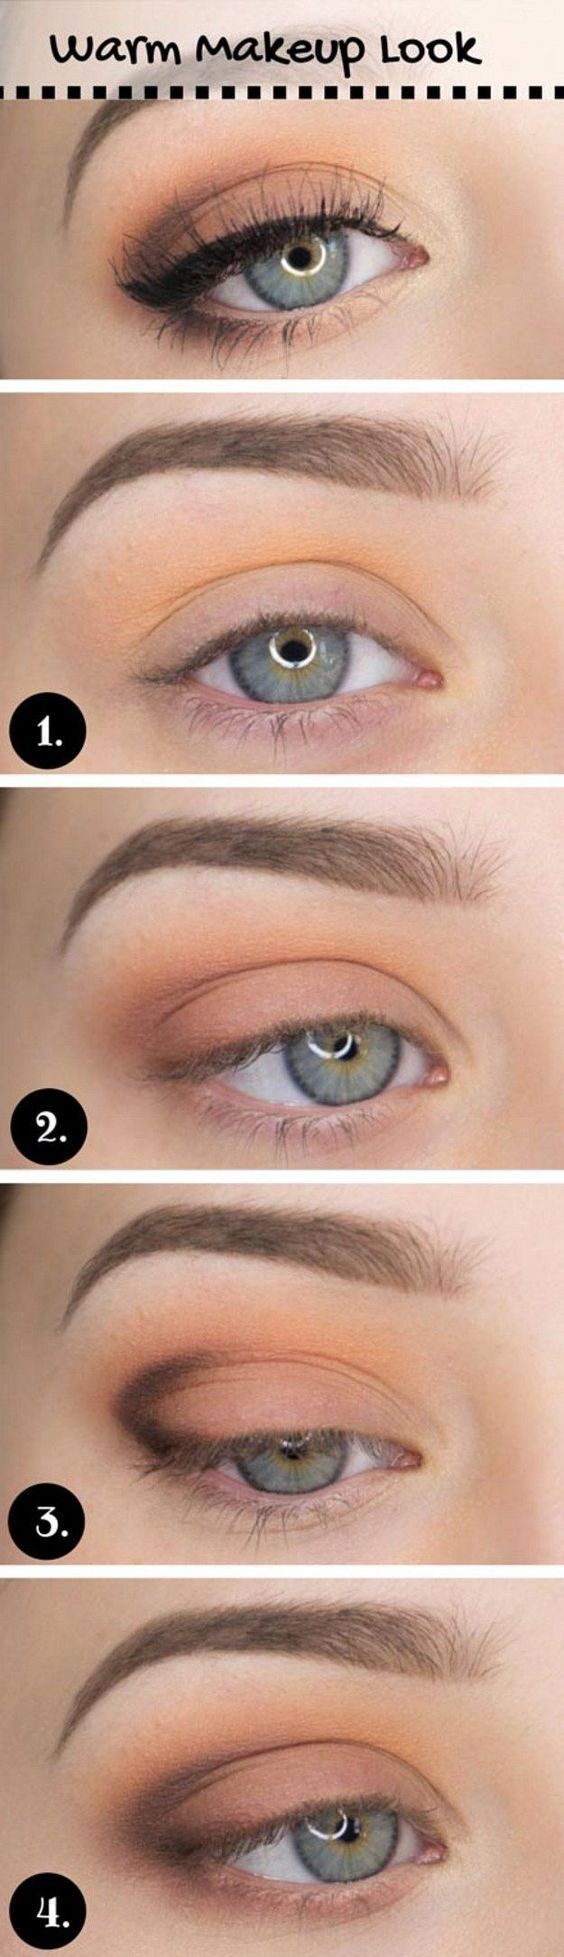 How to Do Casual Makeup Look | Everyday Makeup by Makeup Tutorials at http://www.makeuptutorials.com/makeup-tutorial-12-makeup-for-blue-eyes: